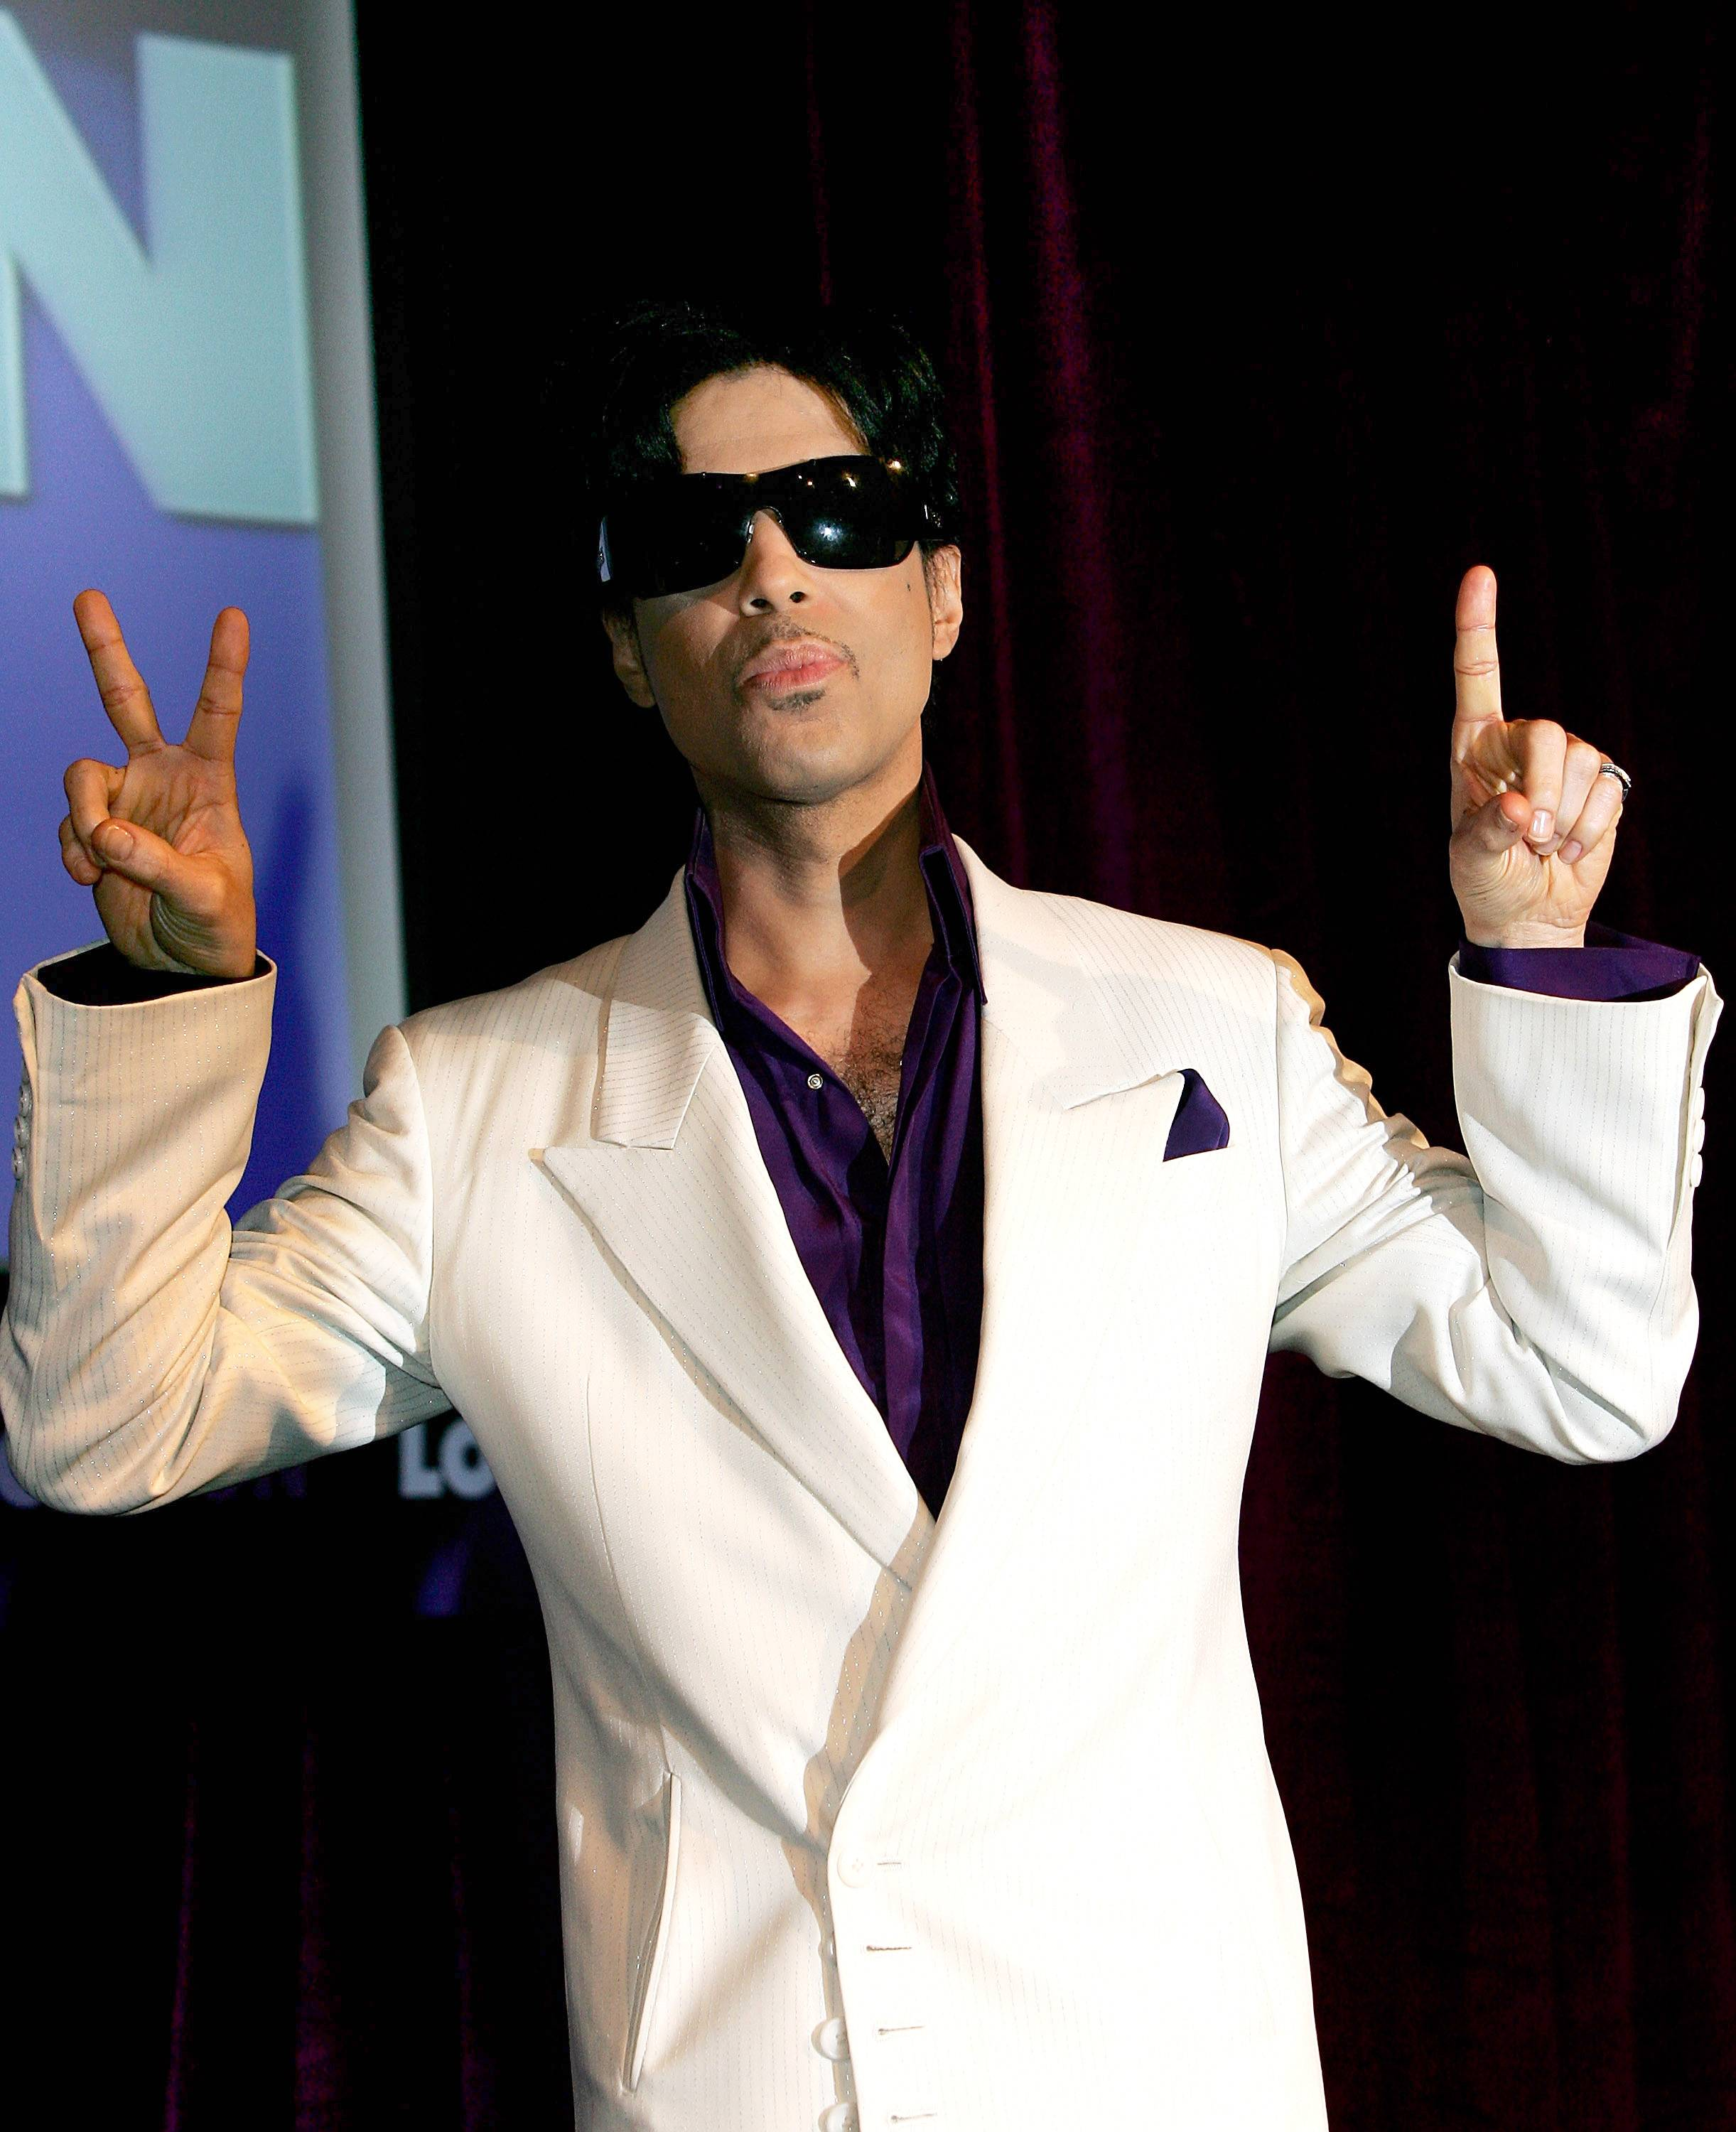 Prince vs. Warner Bros. - Prince's drama with his label Warner Bros. is probably one of the most well known battles between an artist and a label in music history. Prince even went through a name change as a result, going from Prince to just a symbol, and becoming known as the Artist Formerly Known as Prince.(Photo: Claire Greenway/Getty Images)